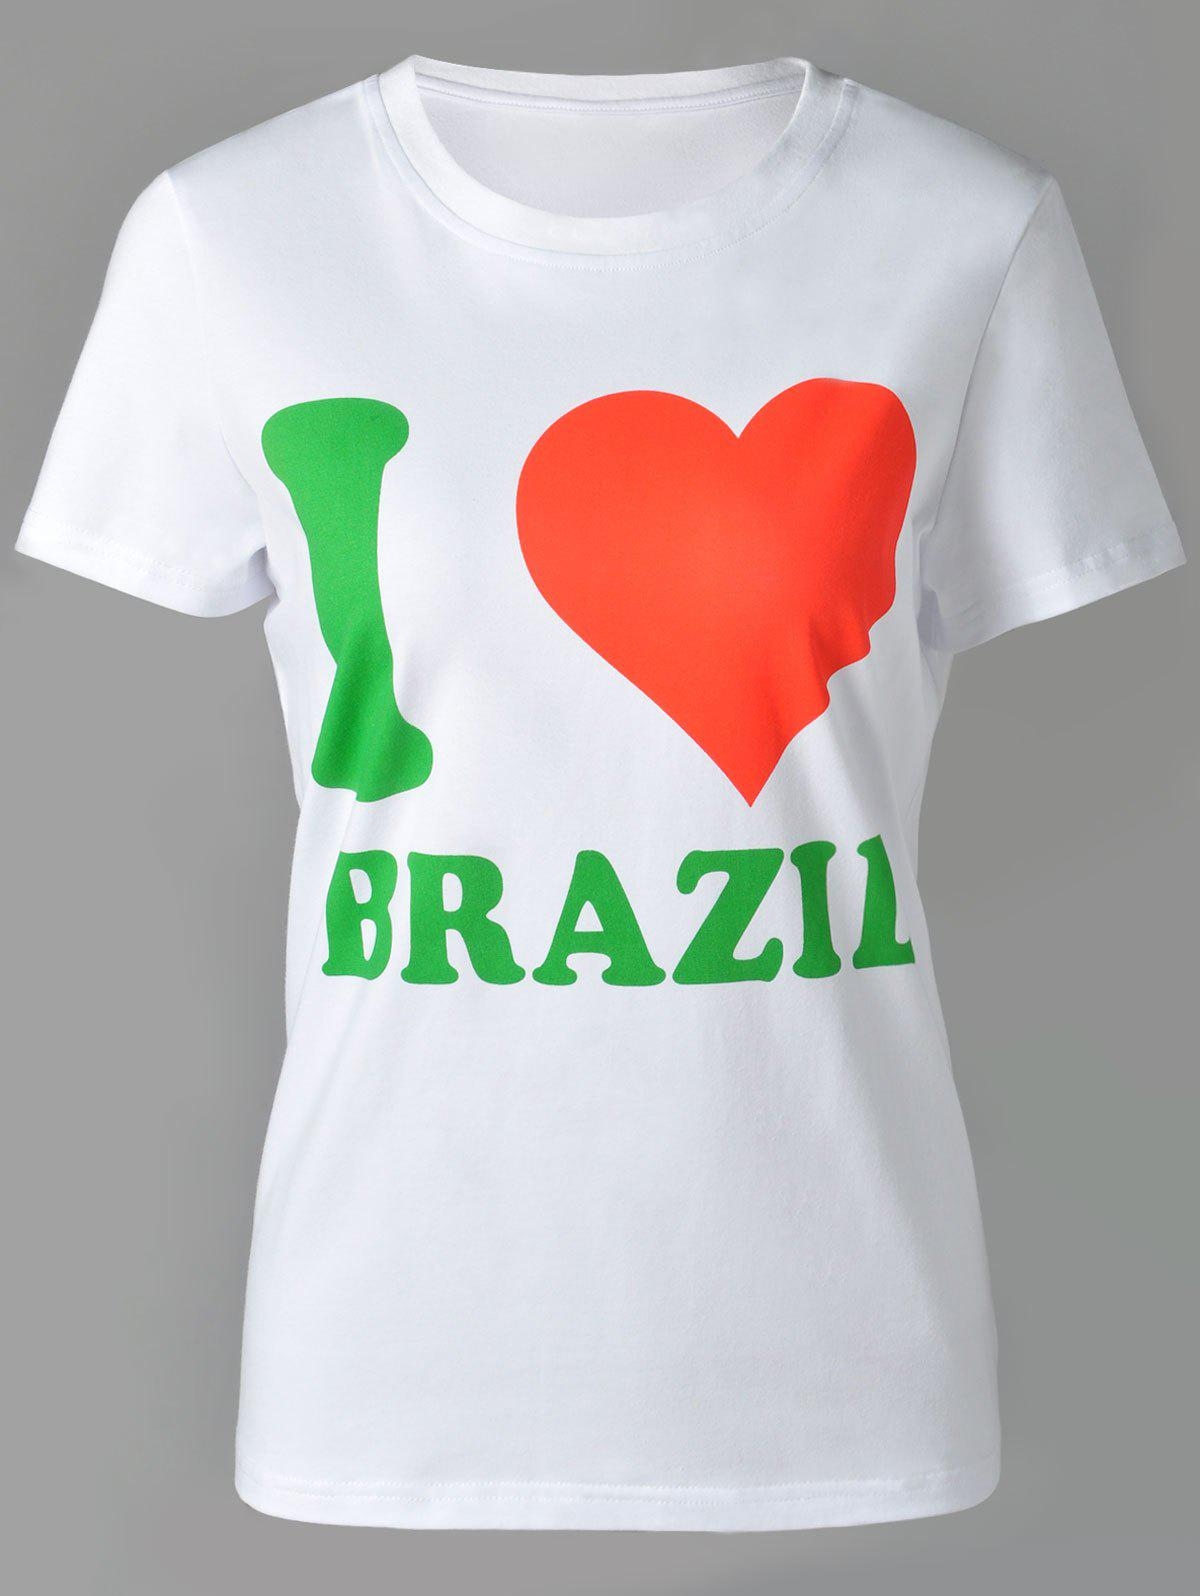 Casual Women's Round Neck Letter and Heart Print Short Sleeve T-Shirt - WHITE XL